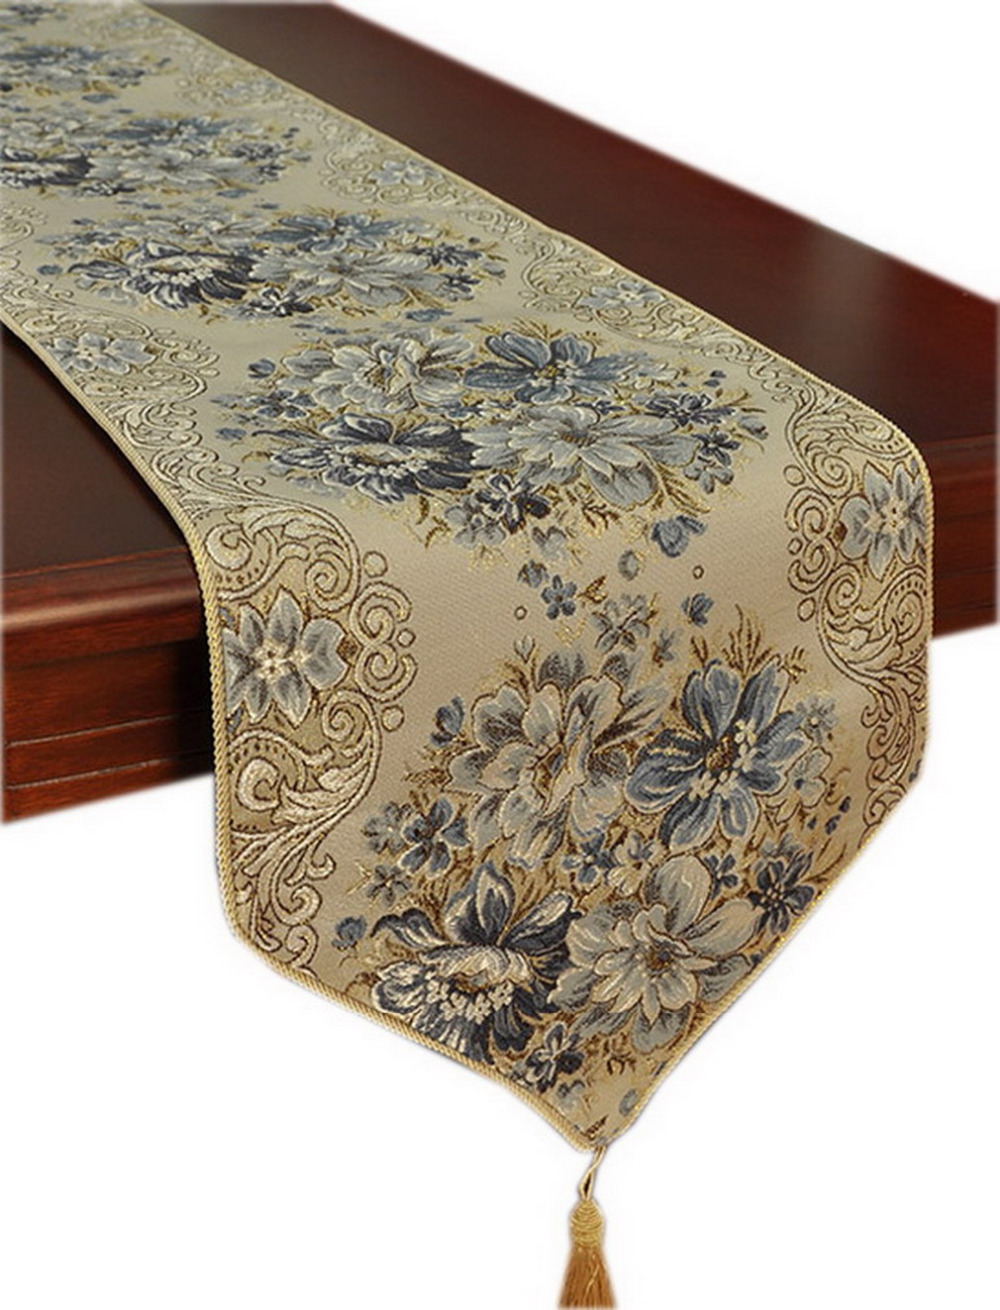 Elegant Table Runners And Placemats - Table Design Ideas